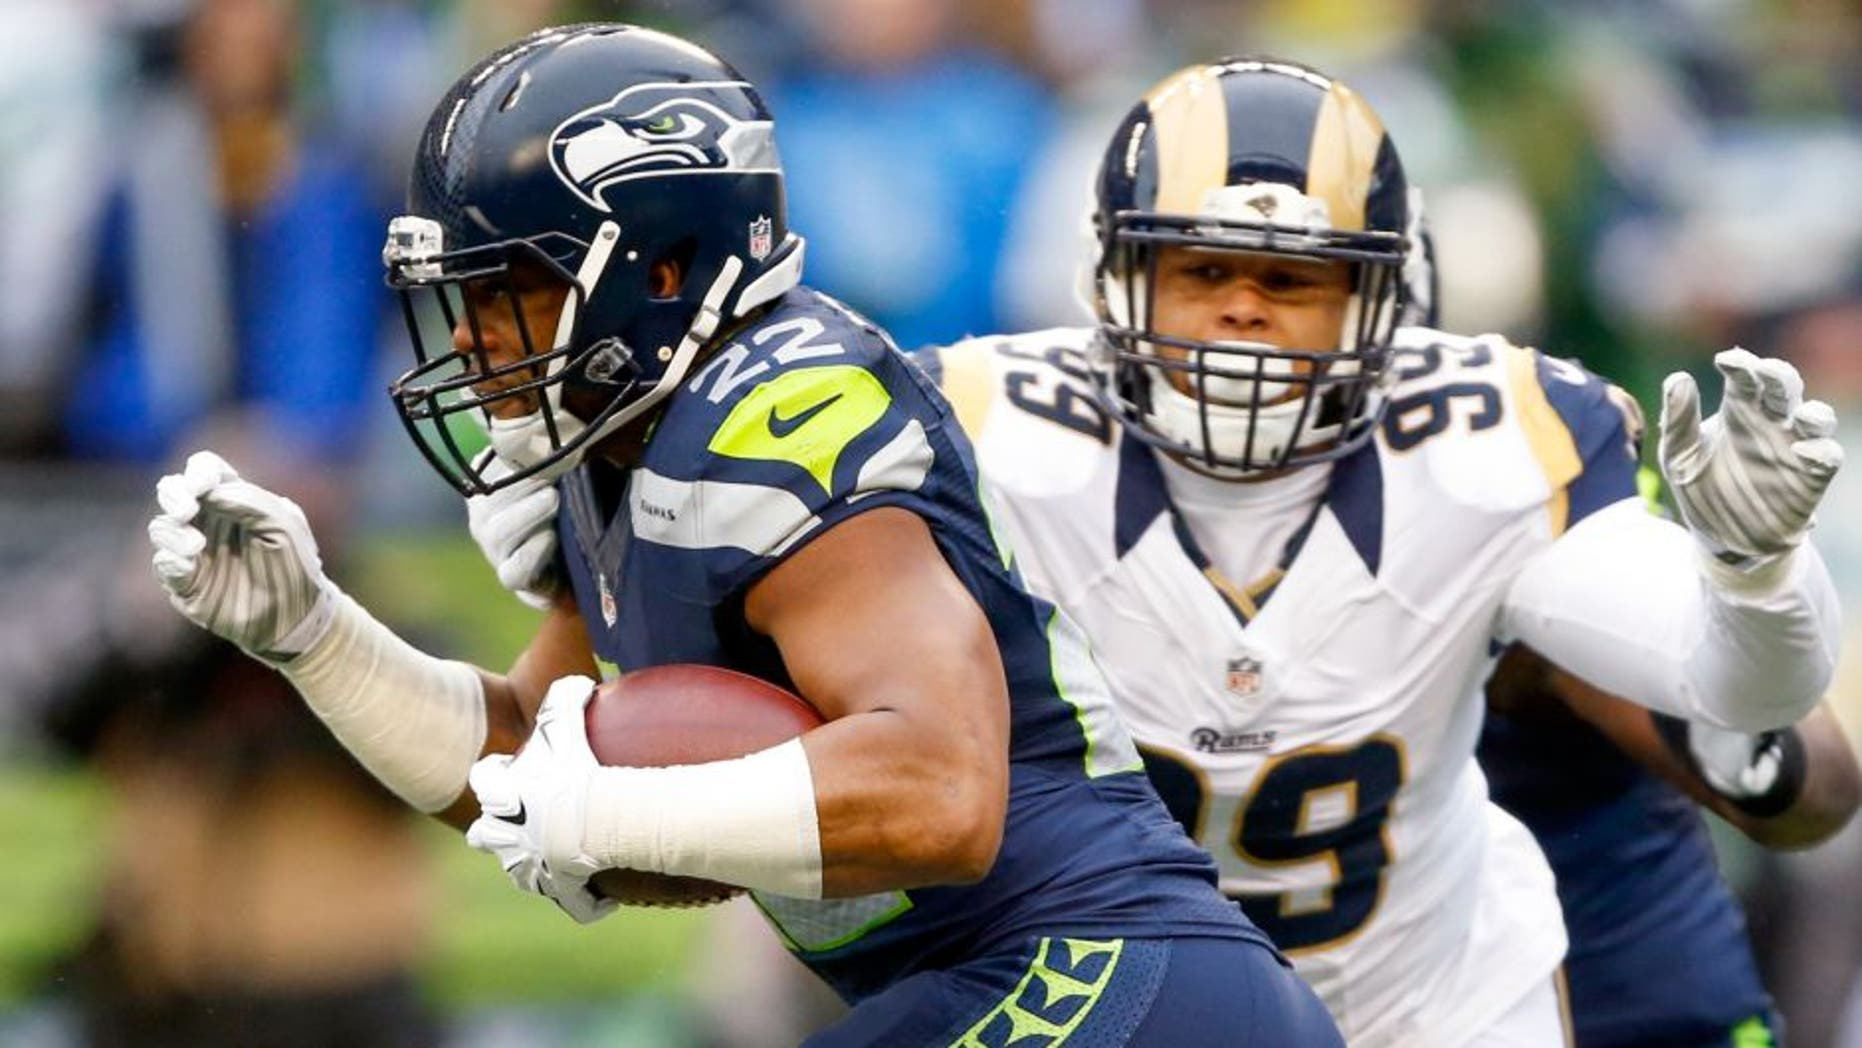 Dec 27, 2015; Seattle, WA, USA; Seattle Seahawks running back Fred Jackson (22) is tackled by St. Louis Rams defensive tackle Aaron Donald (99) during the first quarter at CenturyLink Field. Mandatory Credit: Joe Nicholson-USA TODAY Sports